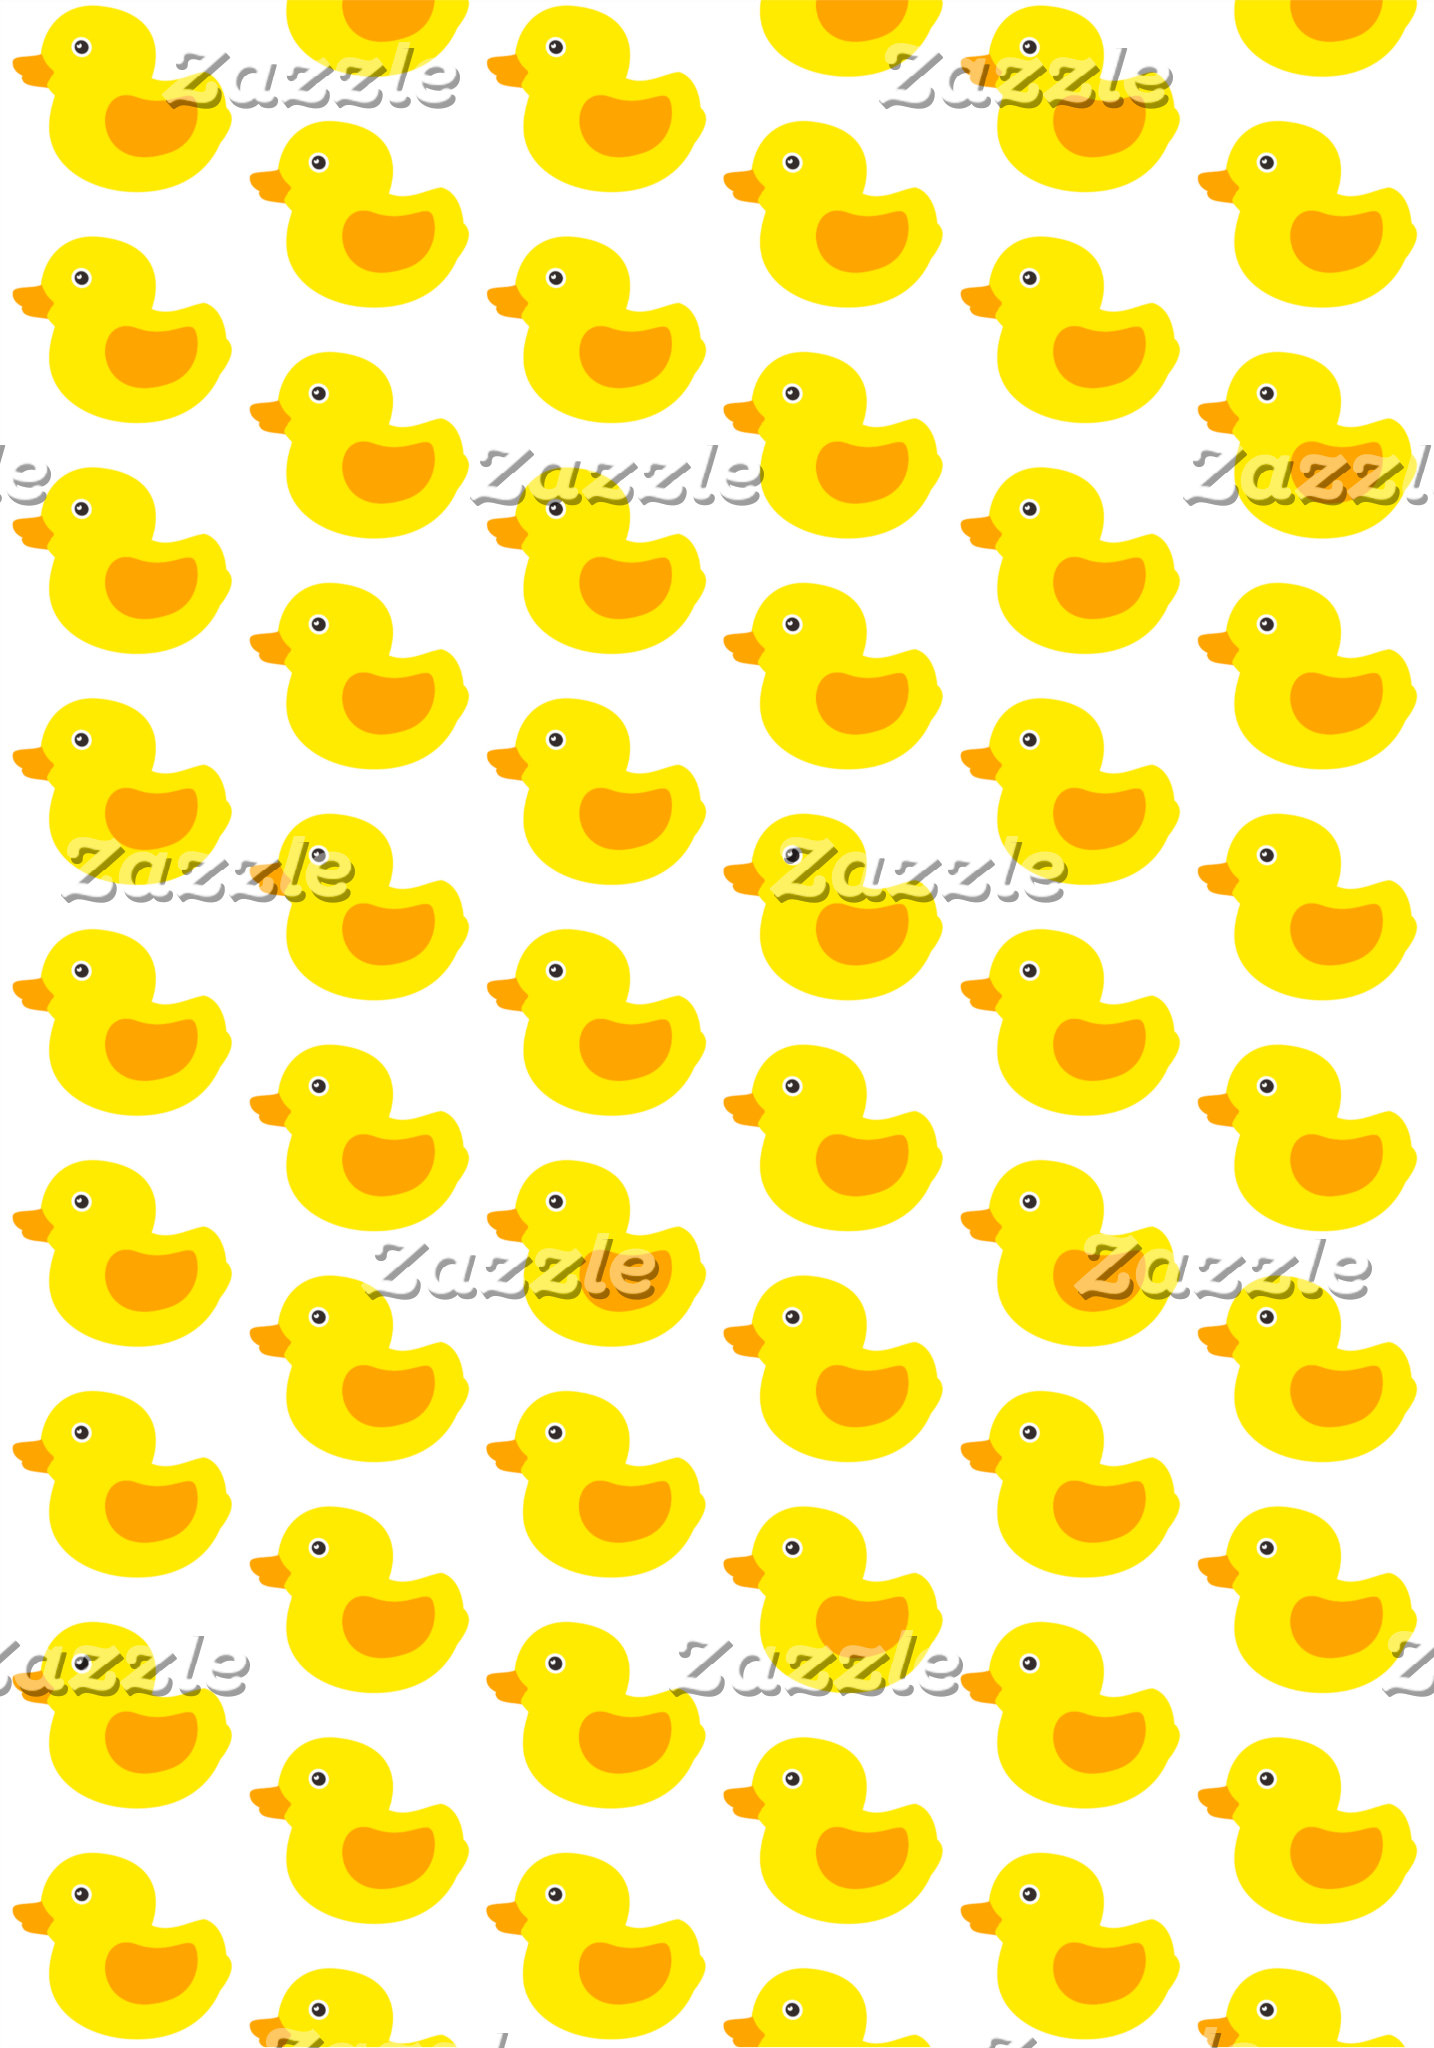 Yellow Rubber Ducky Bathroom and Home Decor